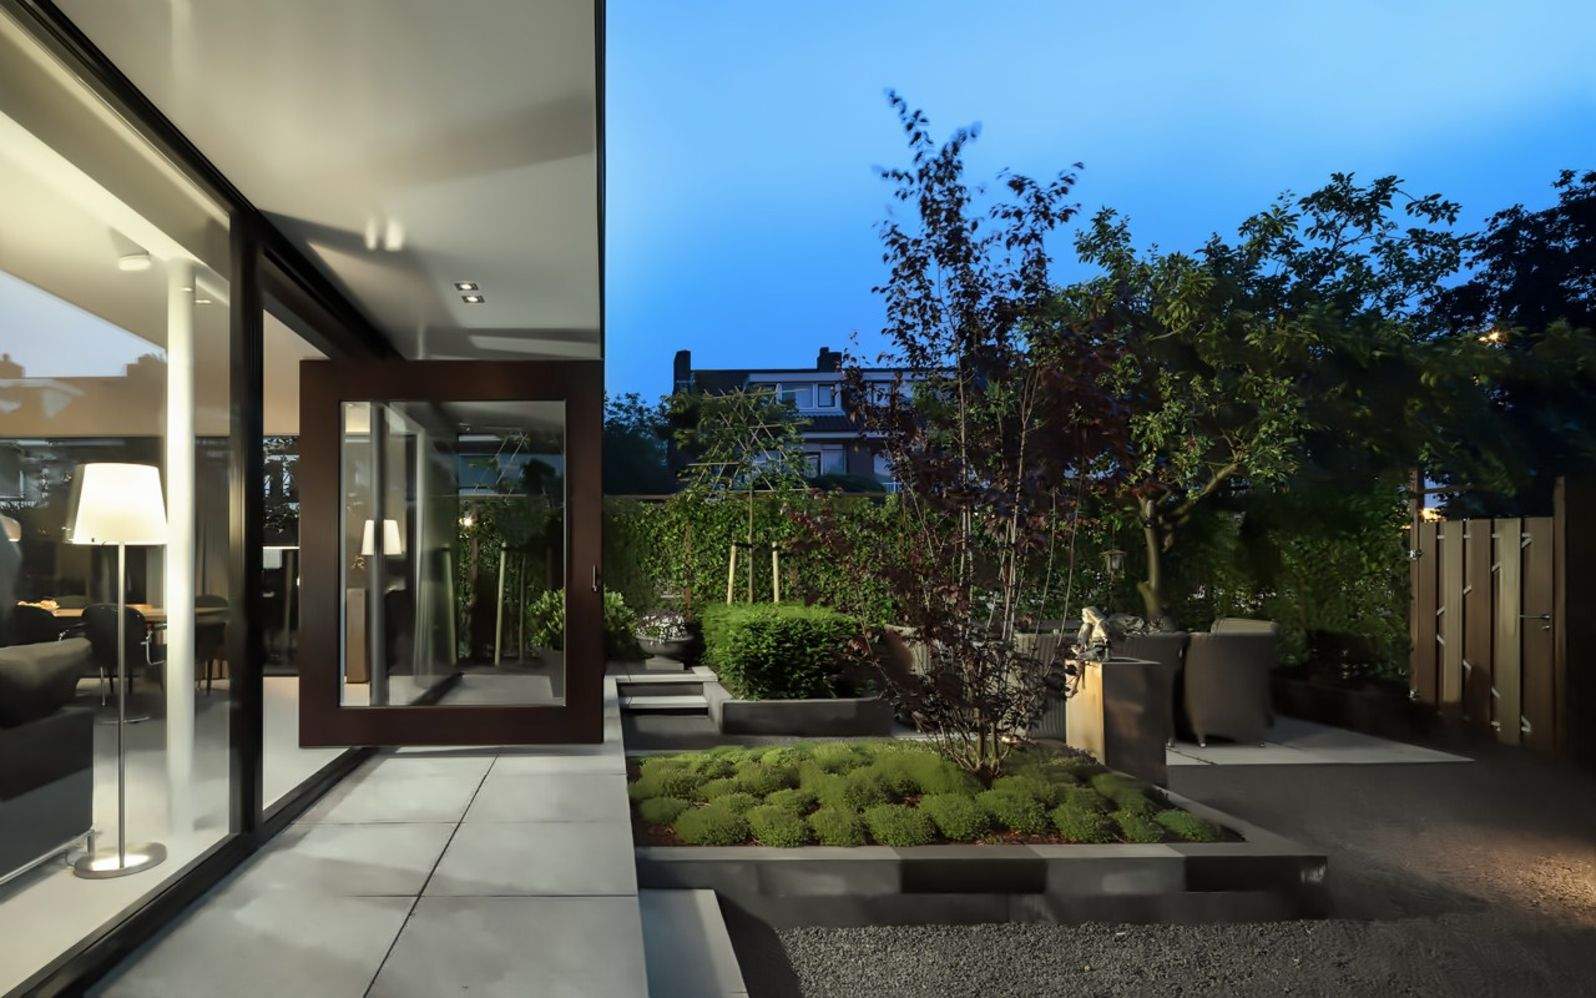 Inspiring home renovation in Rotterdam showing off high quality living space combined with relaxing outdoor area Living Hillegersberg (3)